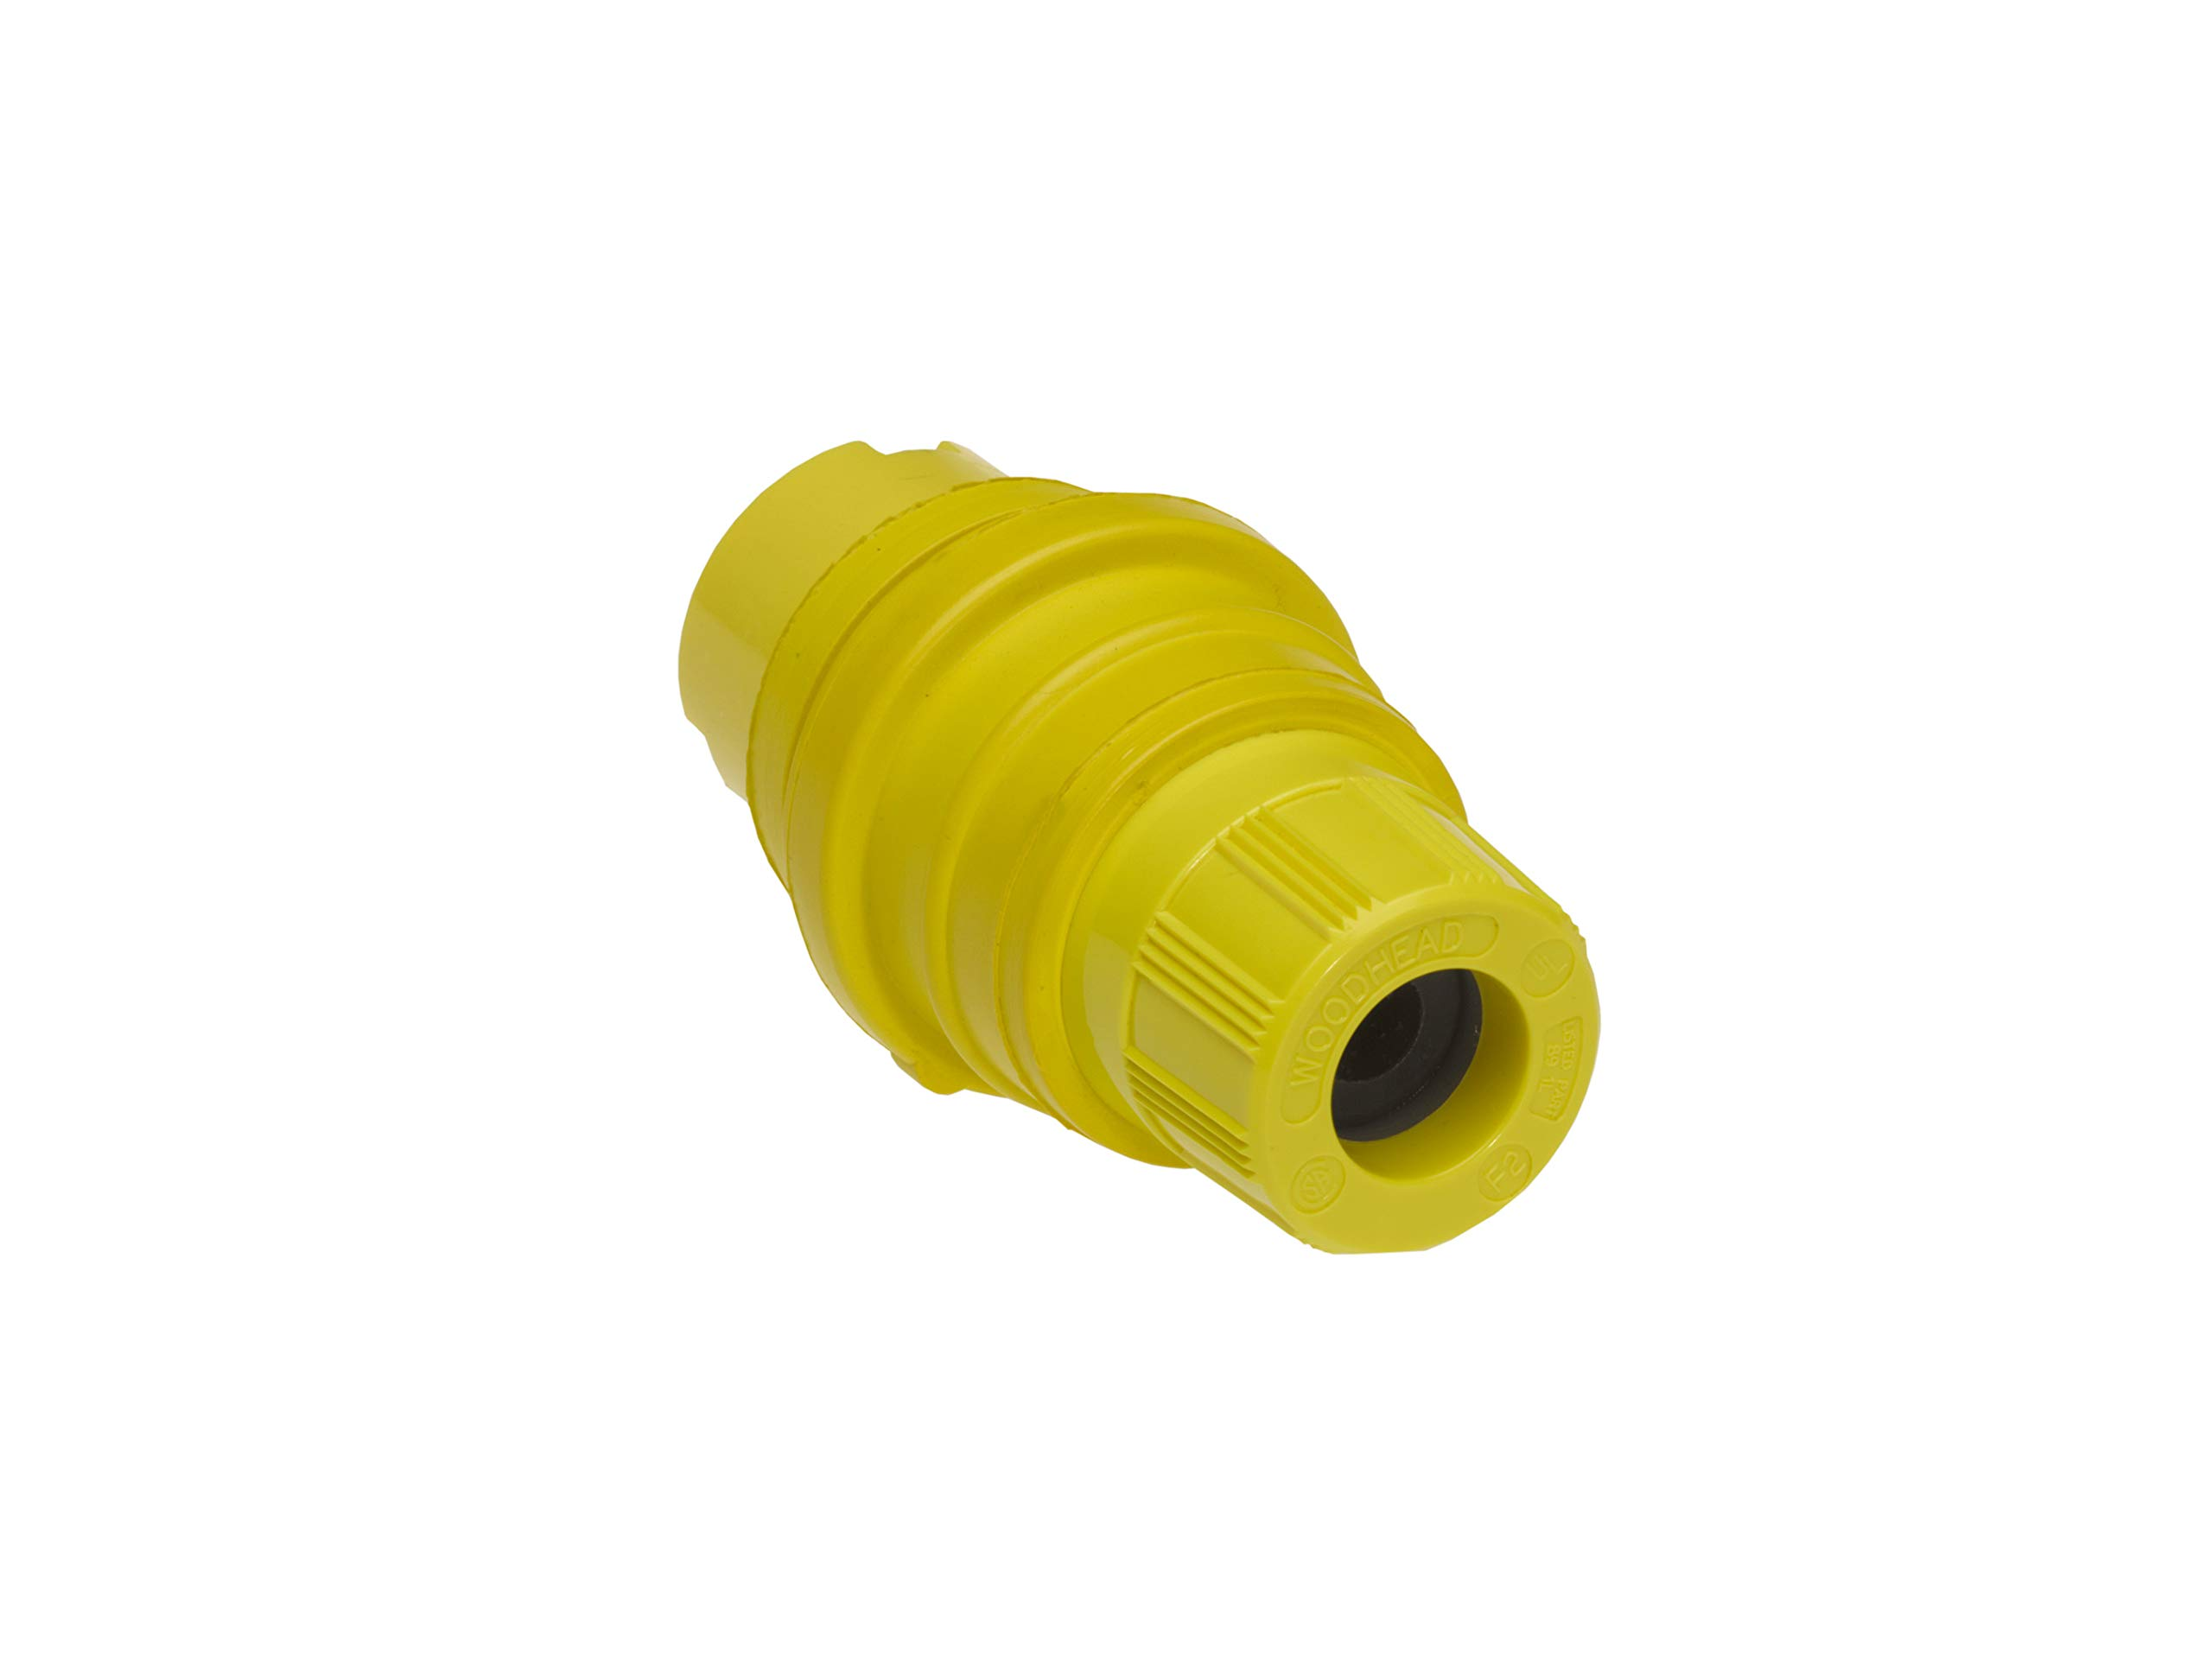 Woodhead 27W76MB Watertite Wet Location Locking Blade Connector For Male Receptacle, 3-Phase, 4 Wires, 3 Poles, NEMA L16-20 Configuration, Yellow, 20A Current, 480V Voltage